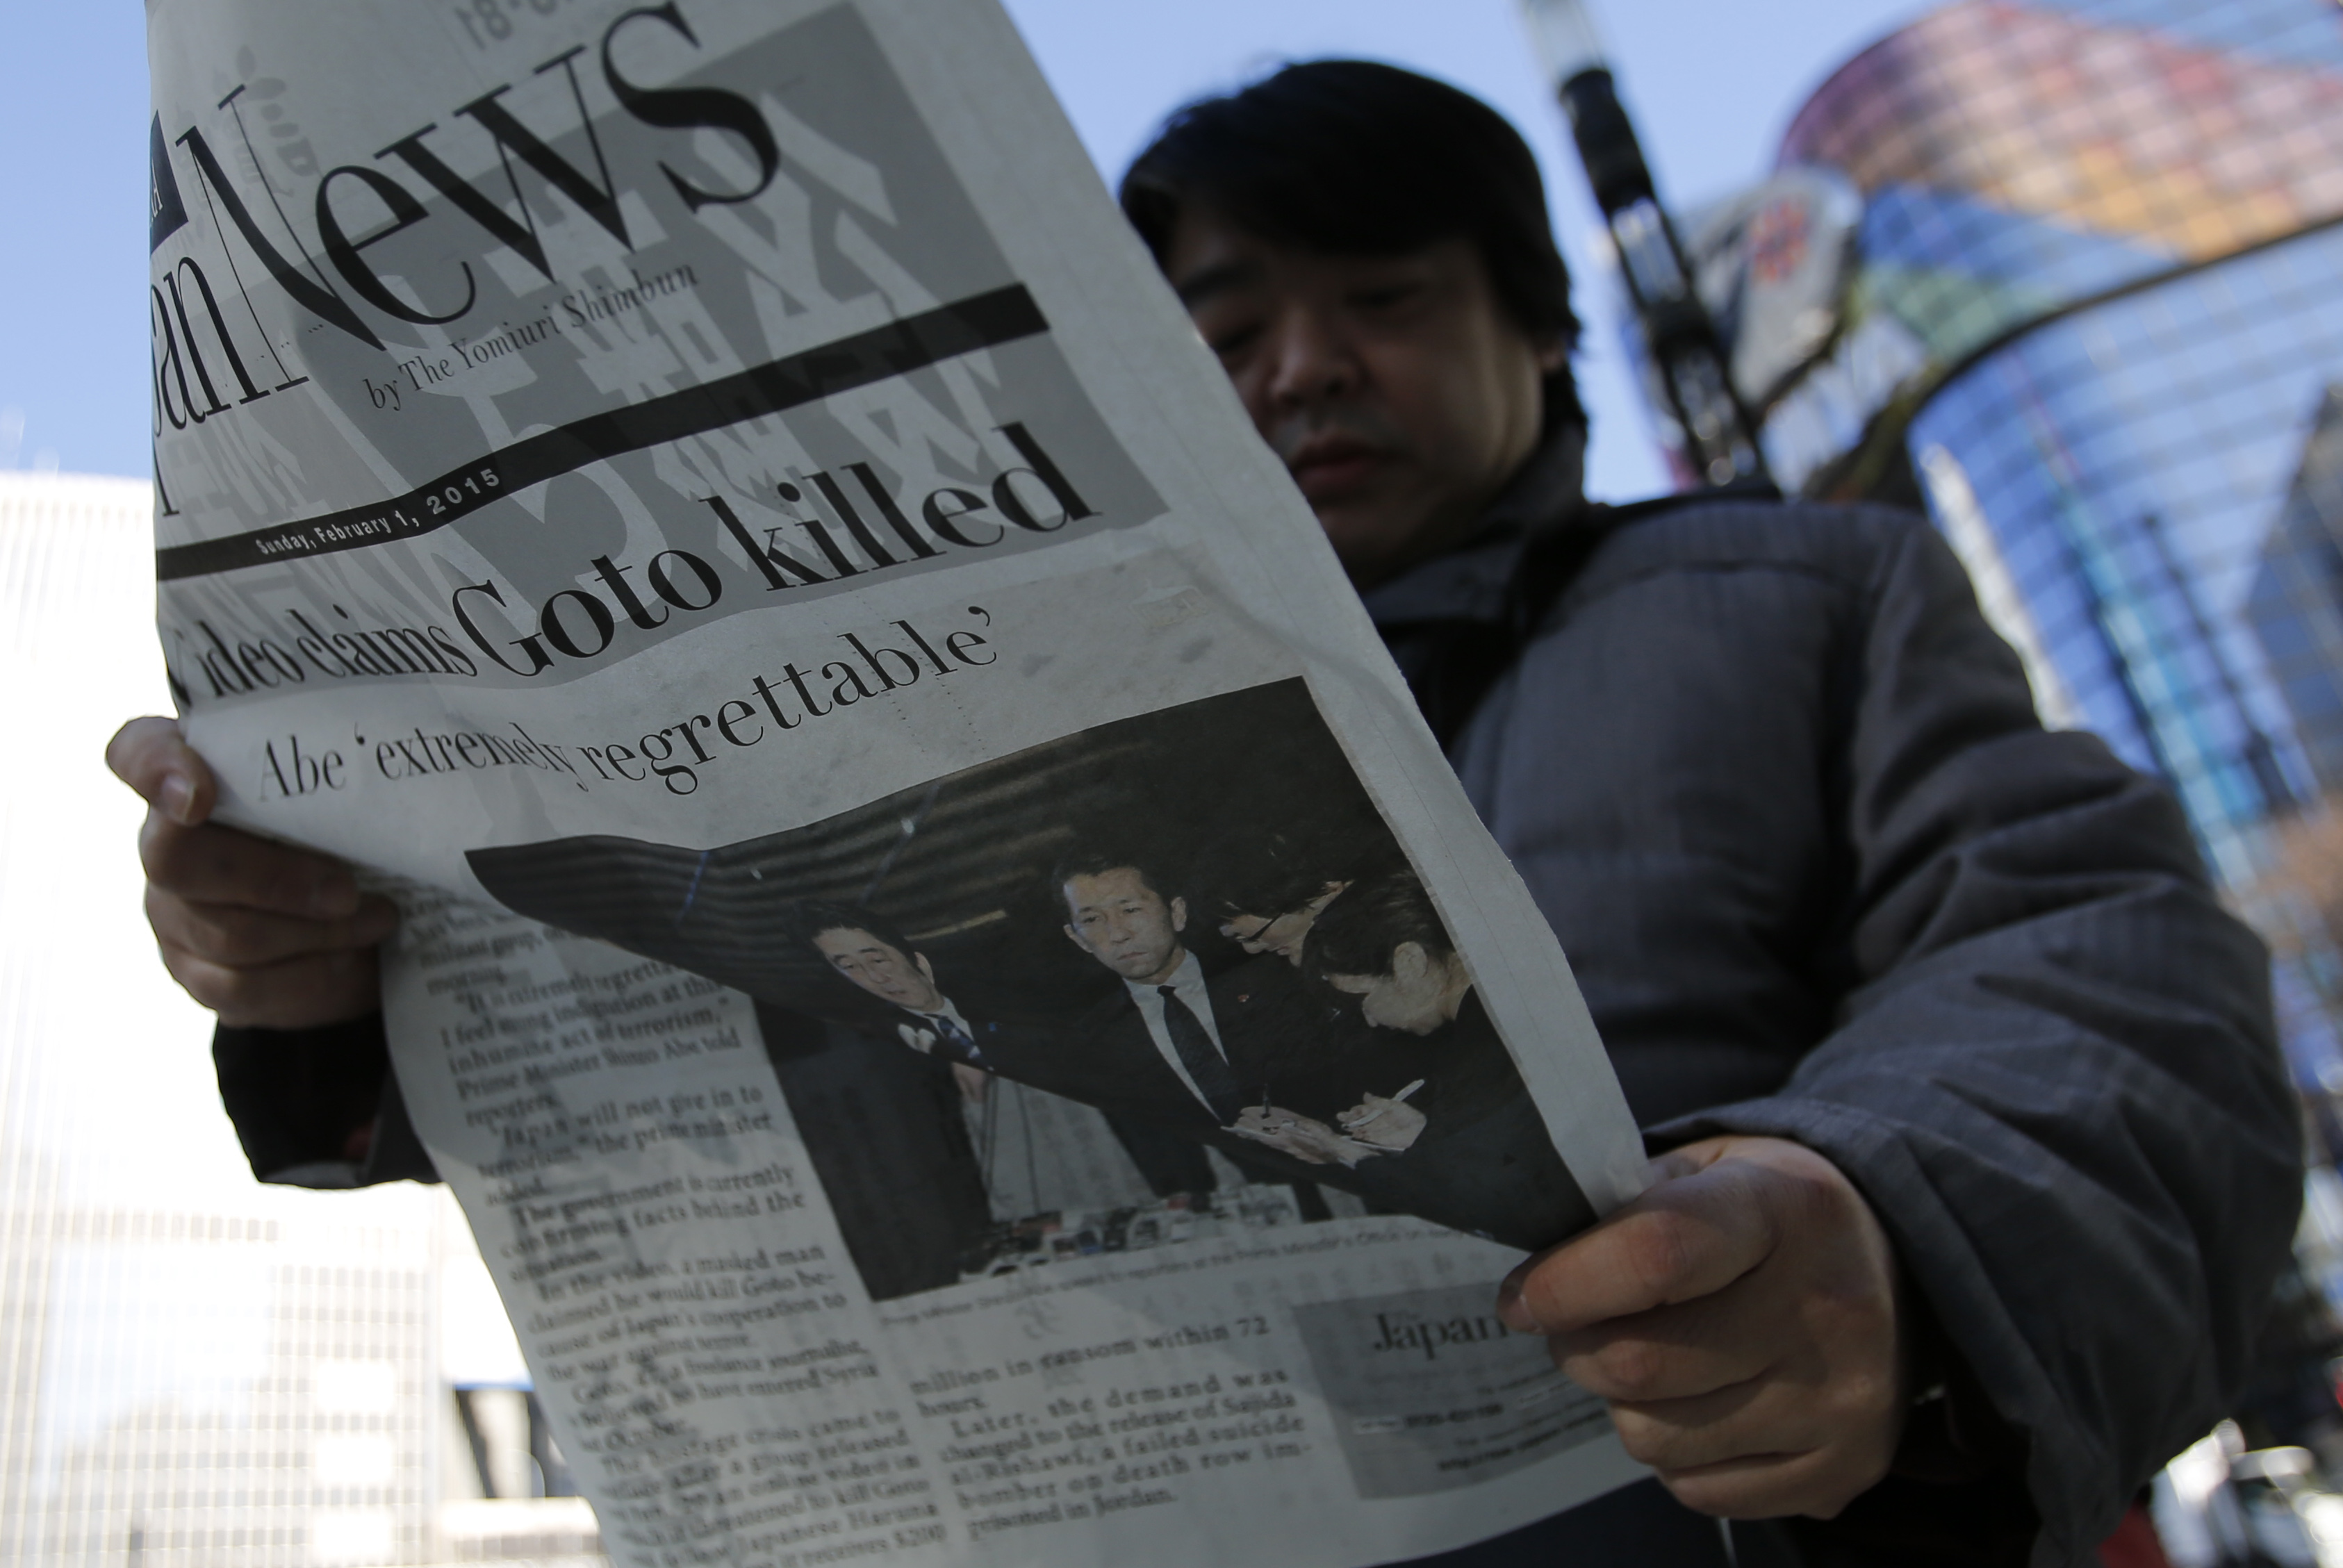 A man in Tokyo's Ginza district reads an extra edition of a newspaper, which reported ISIS' claim to have beheaded Japanese journalist Kenji Goto on February 1, 2015.